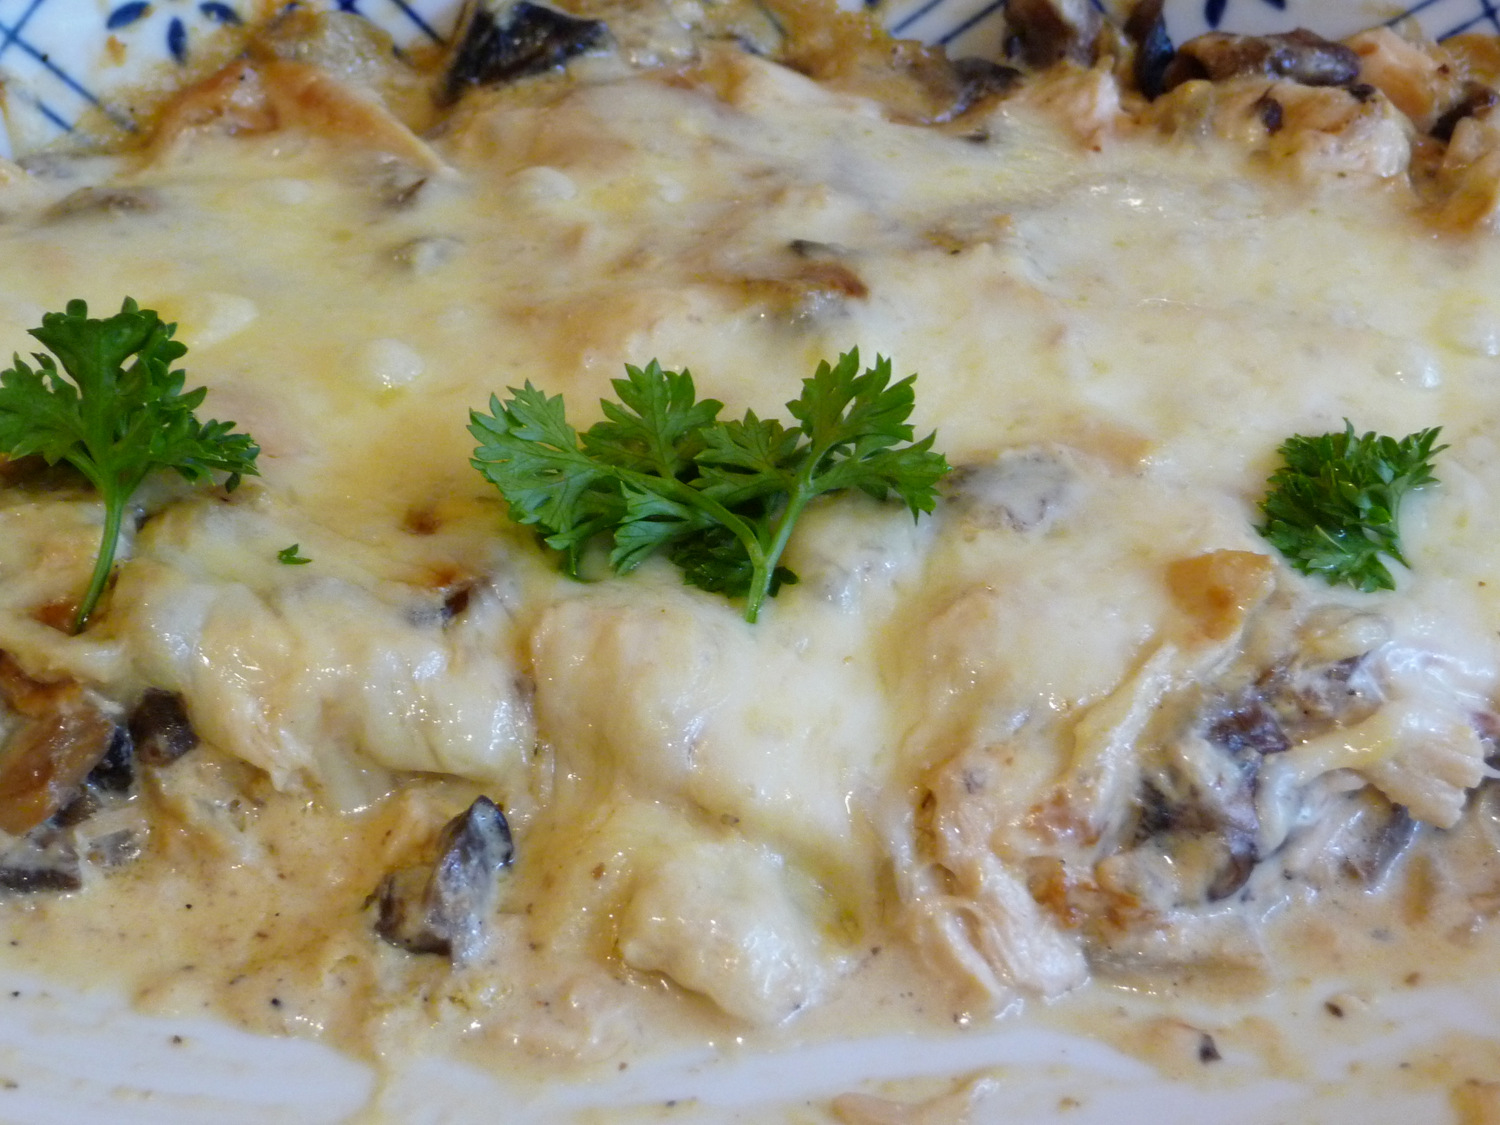 ... LOW-CARBING BY JENNIFER ELOFF: CHEESY CHICKEN AND MUSHROOM CASSEROLE